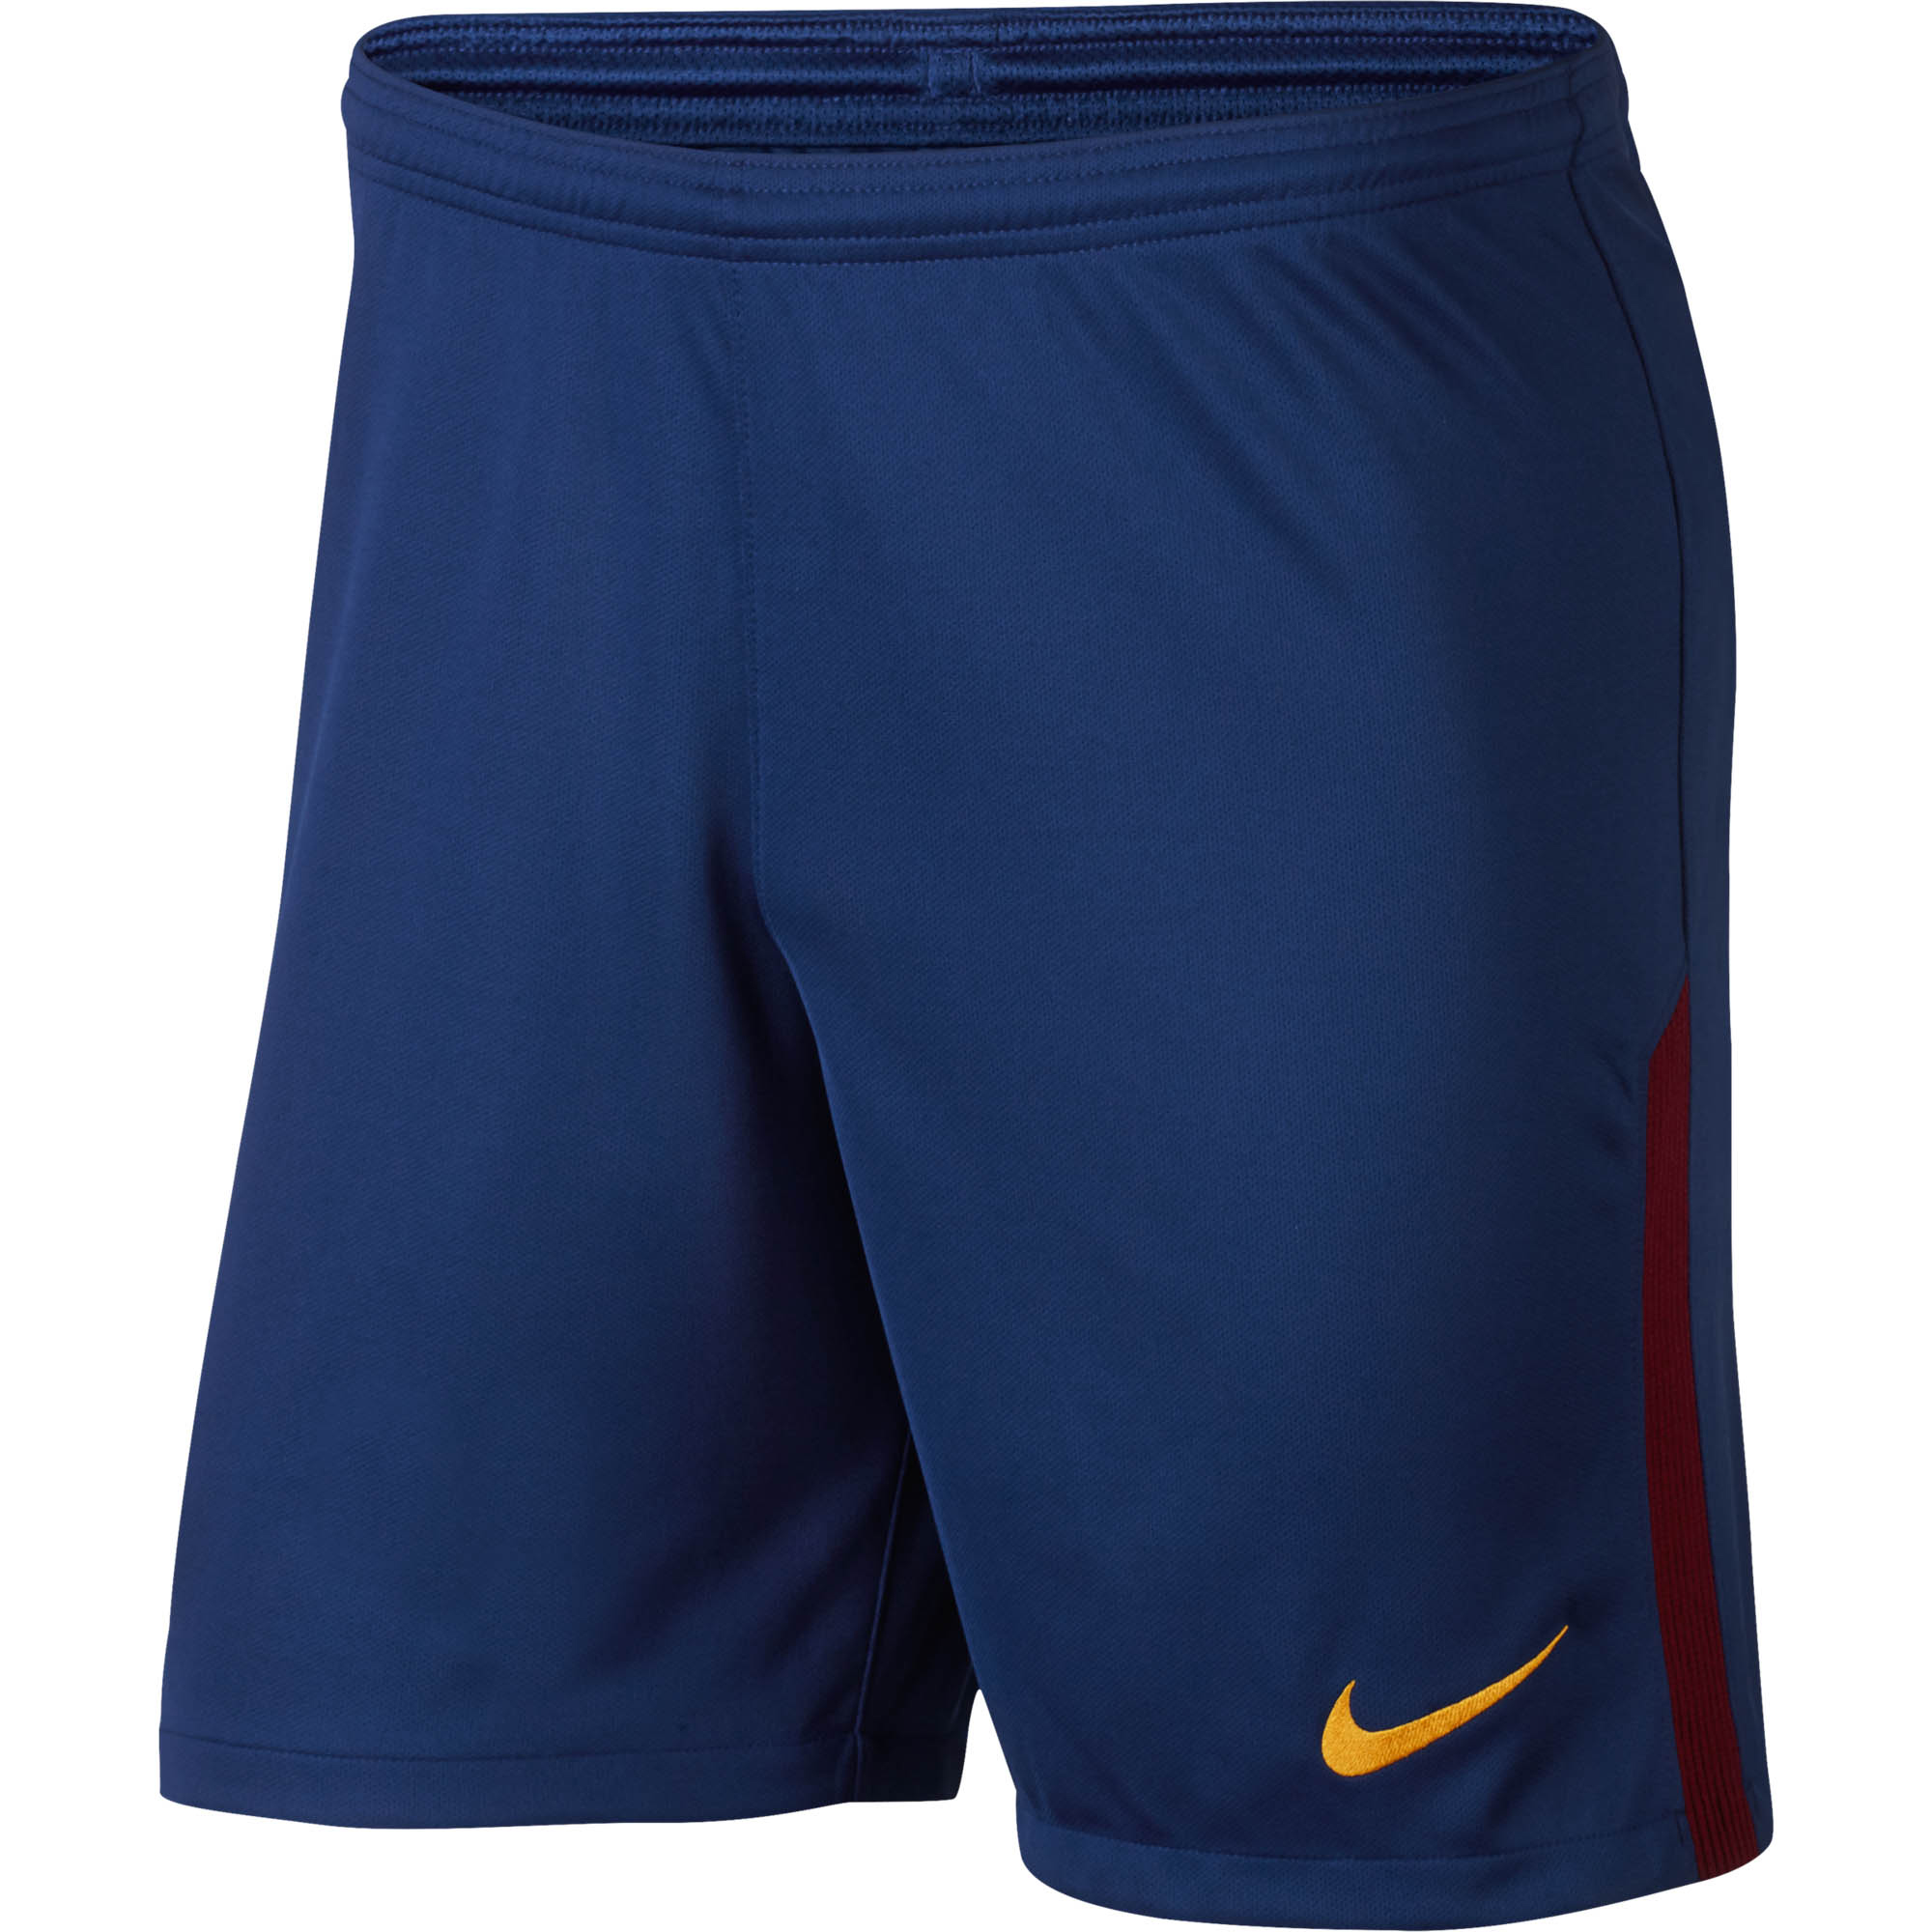 7a1f9953be6 Nike Barcelona Home Short – Deep Royal Blue University Gold